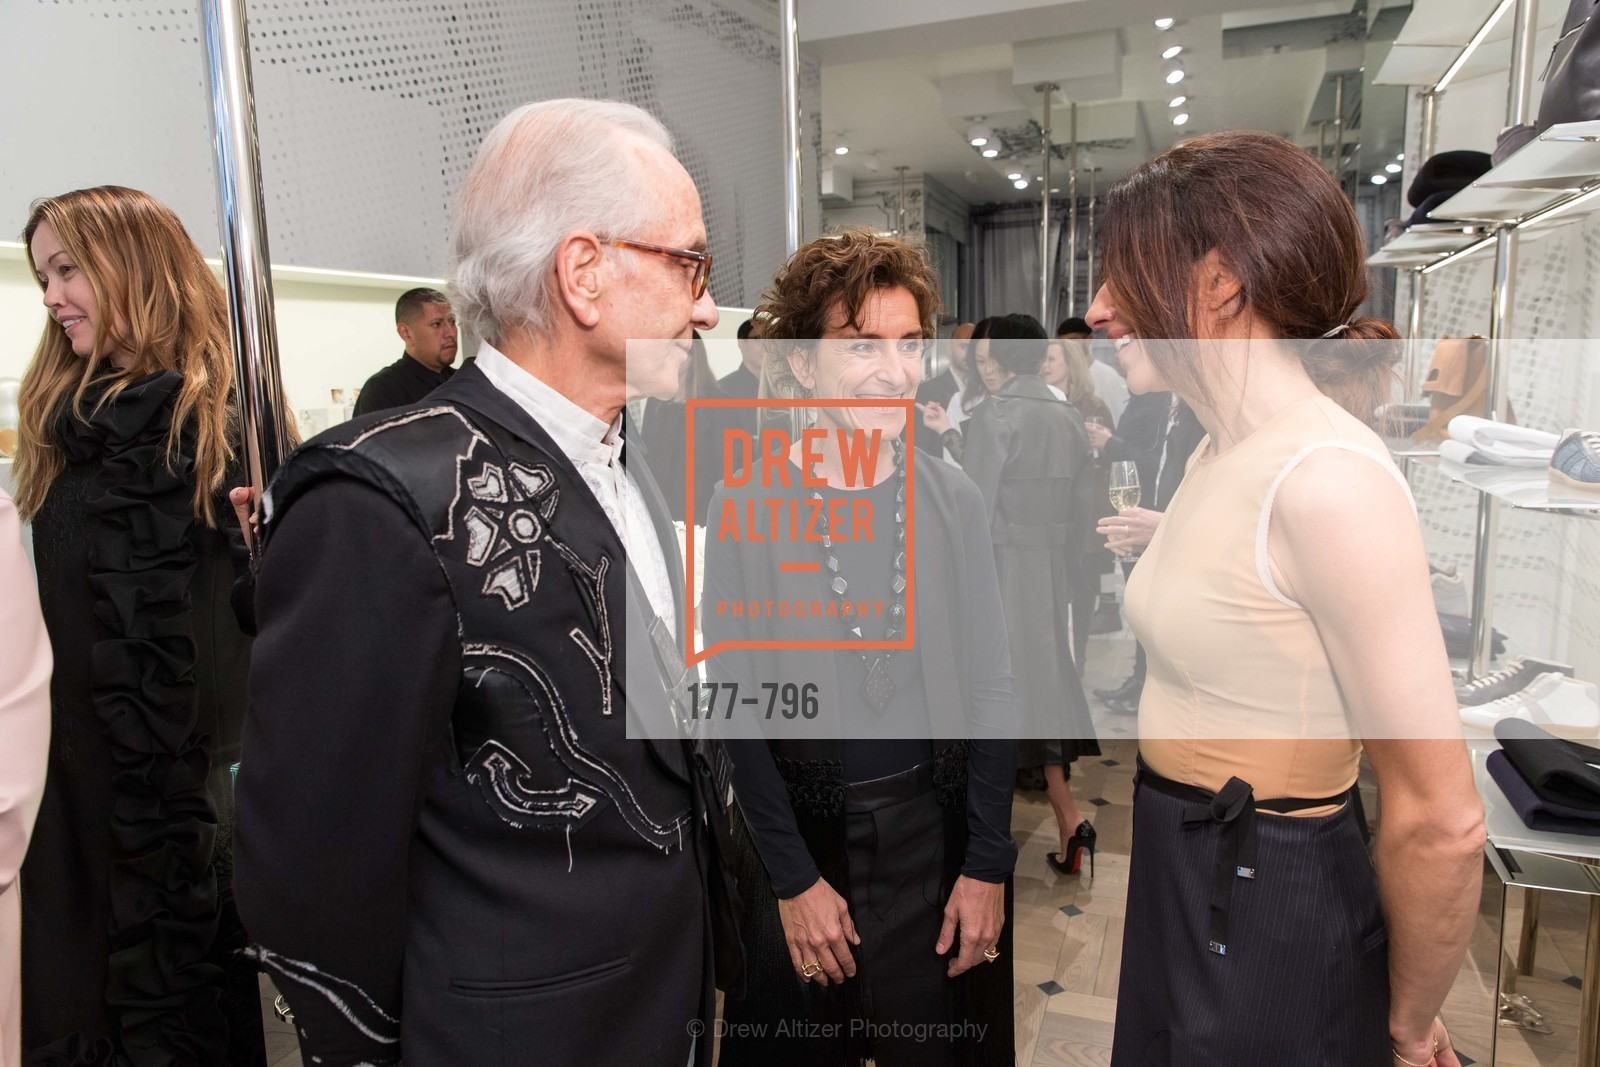 Norman Stone, Monica Voltolina, Sabrina Buell, MAISON MARGIELA San Francisco Boutique Grand Opening Event, US, April 23rd, 2015,Drew Altizer, Drew Altizer Photography, full-service agency, private events, San Francisco photographer, photographer california